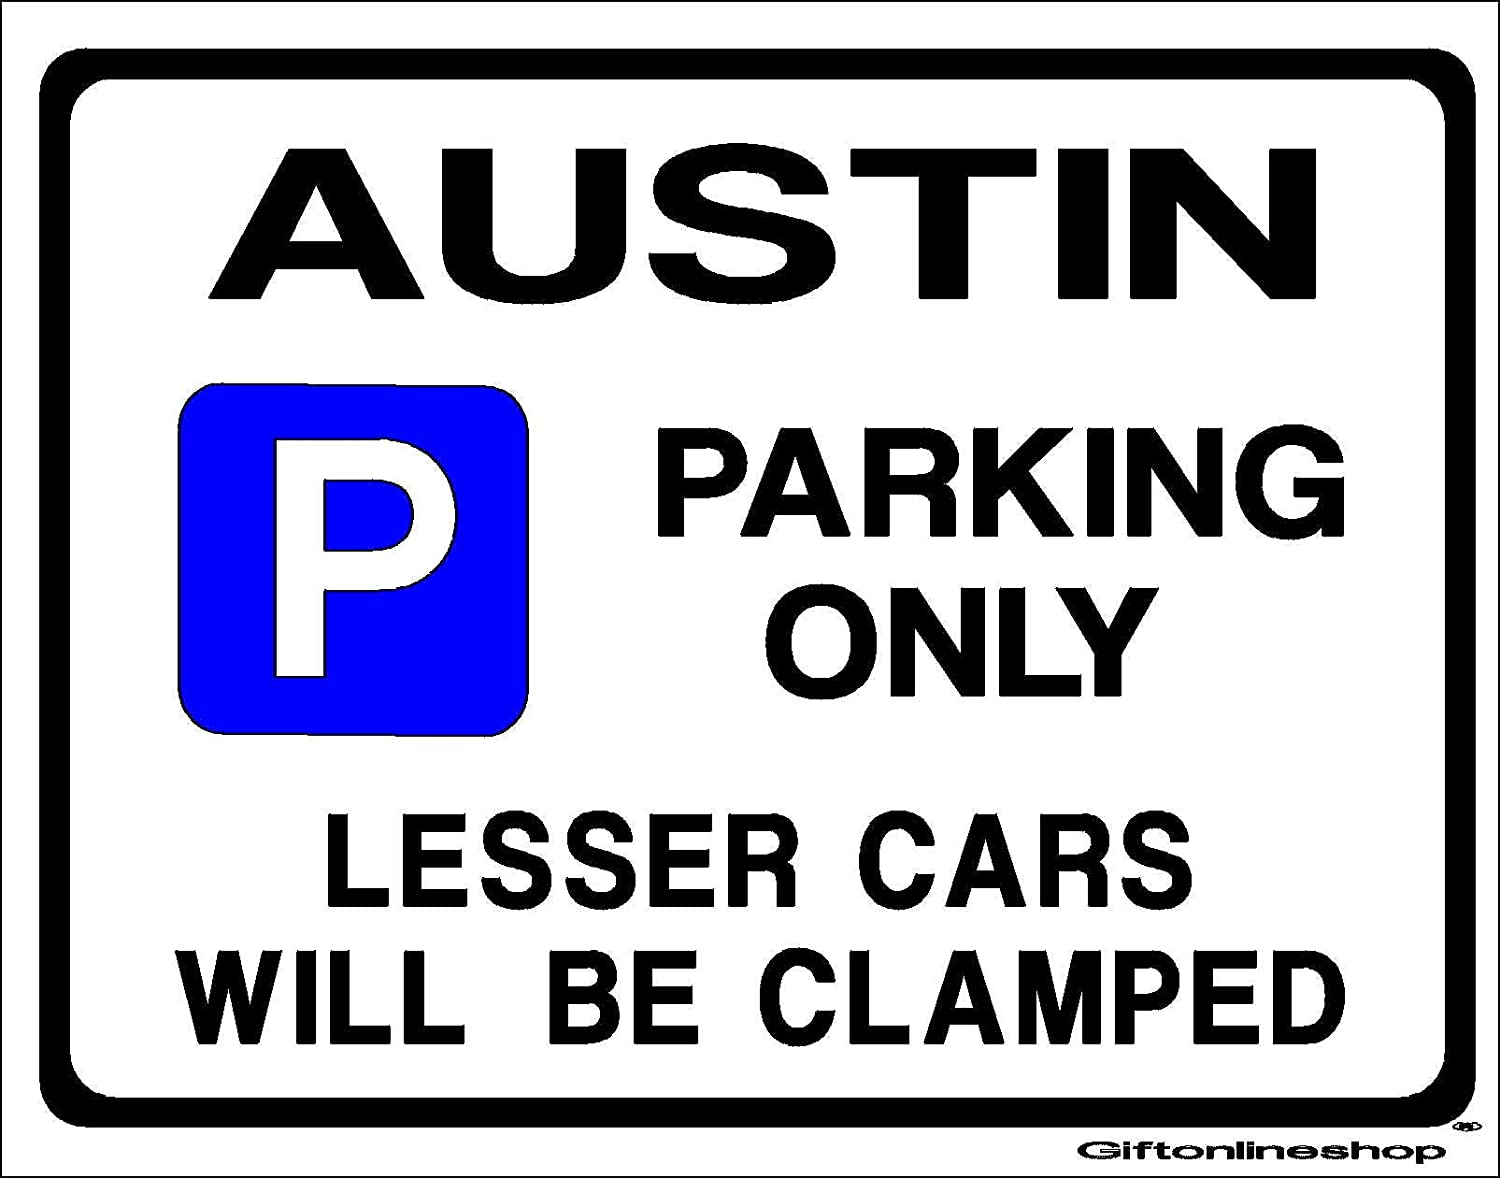 AUSTIN Parking Sign - Gift for 7 a40 a30 1100 1300 model owner -Extra Large Size 205 x 270mm by Custom Made (Made in UK) (All fixing included)